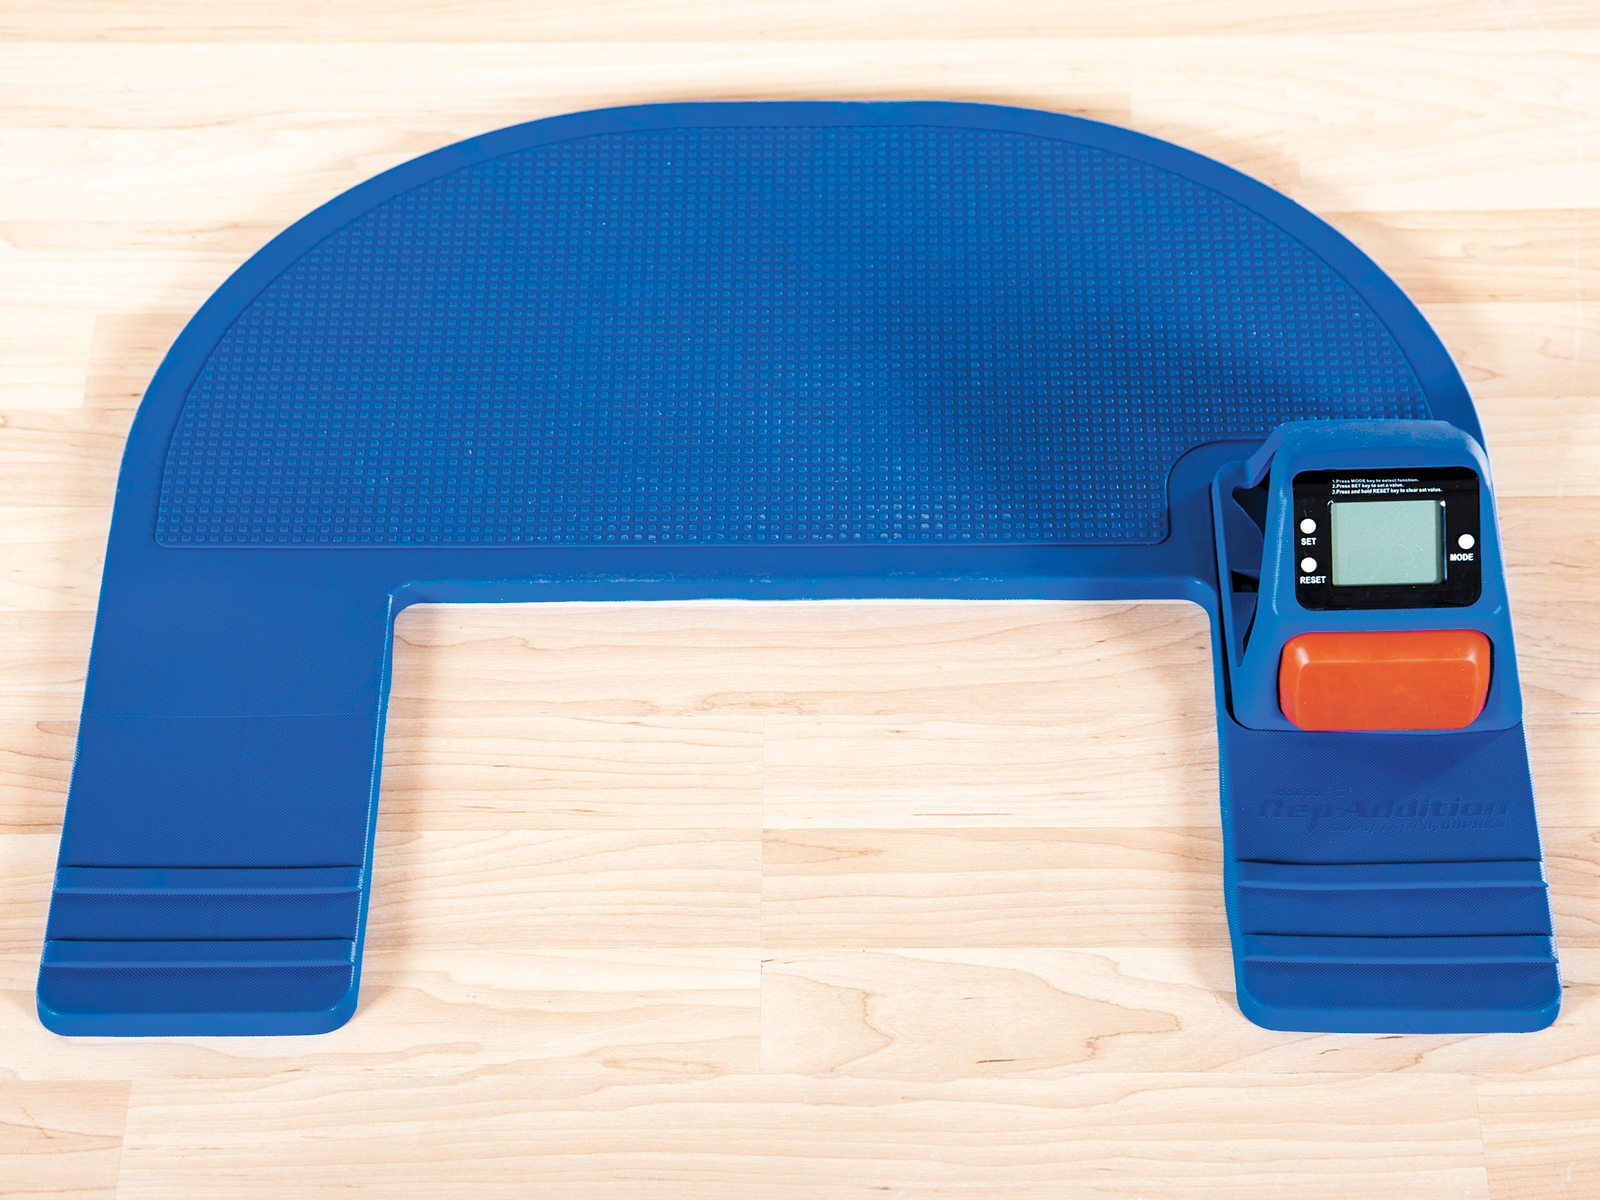 Accurately assess curl ups with easy to use tester